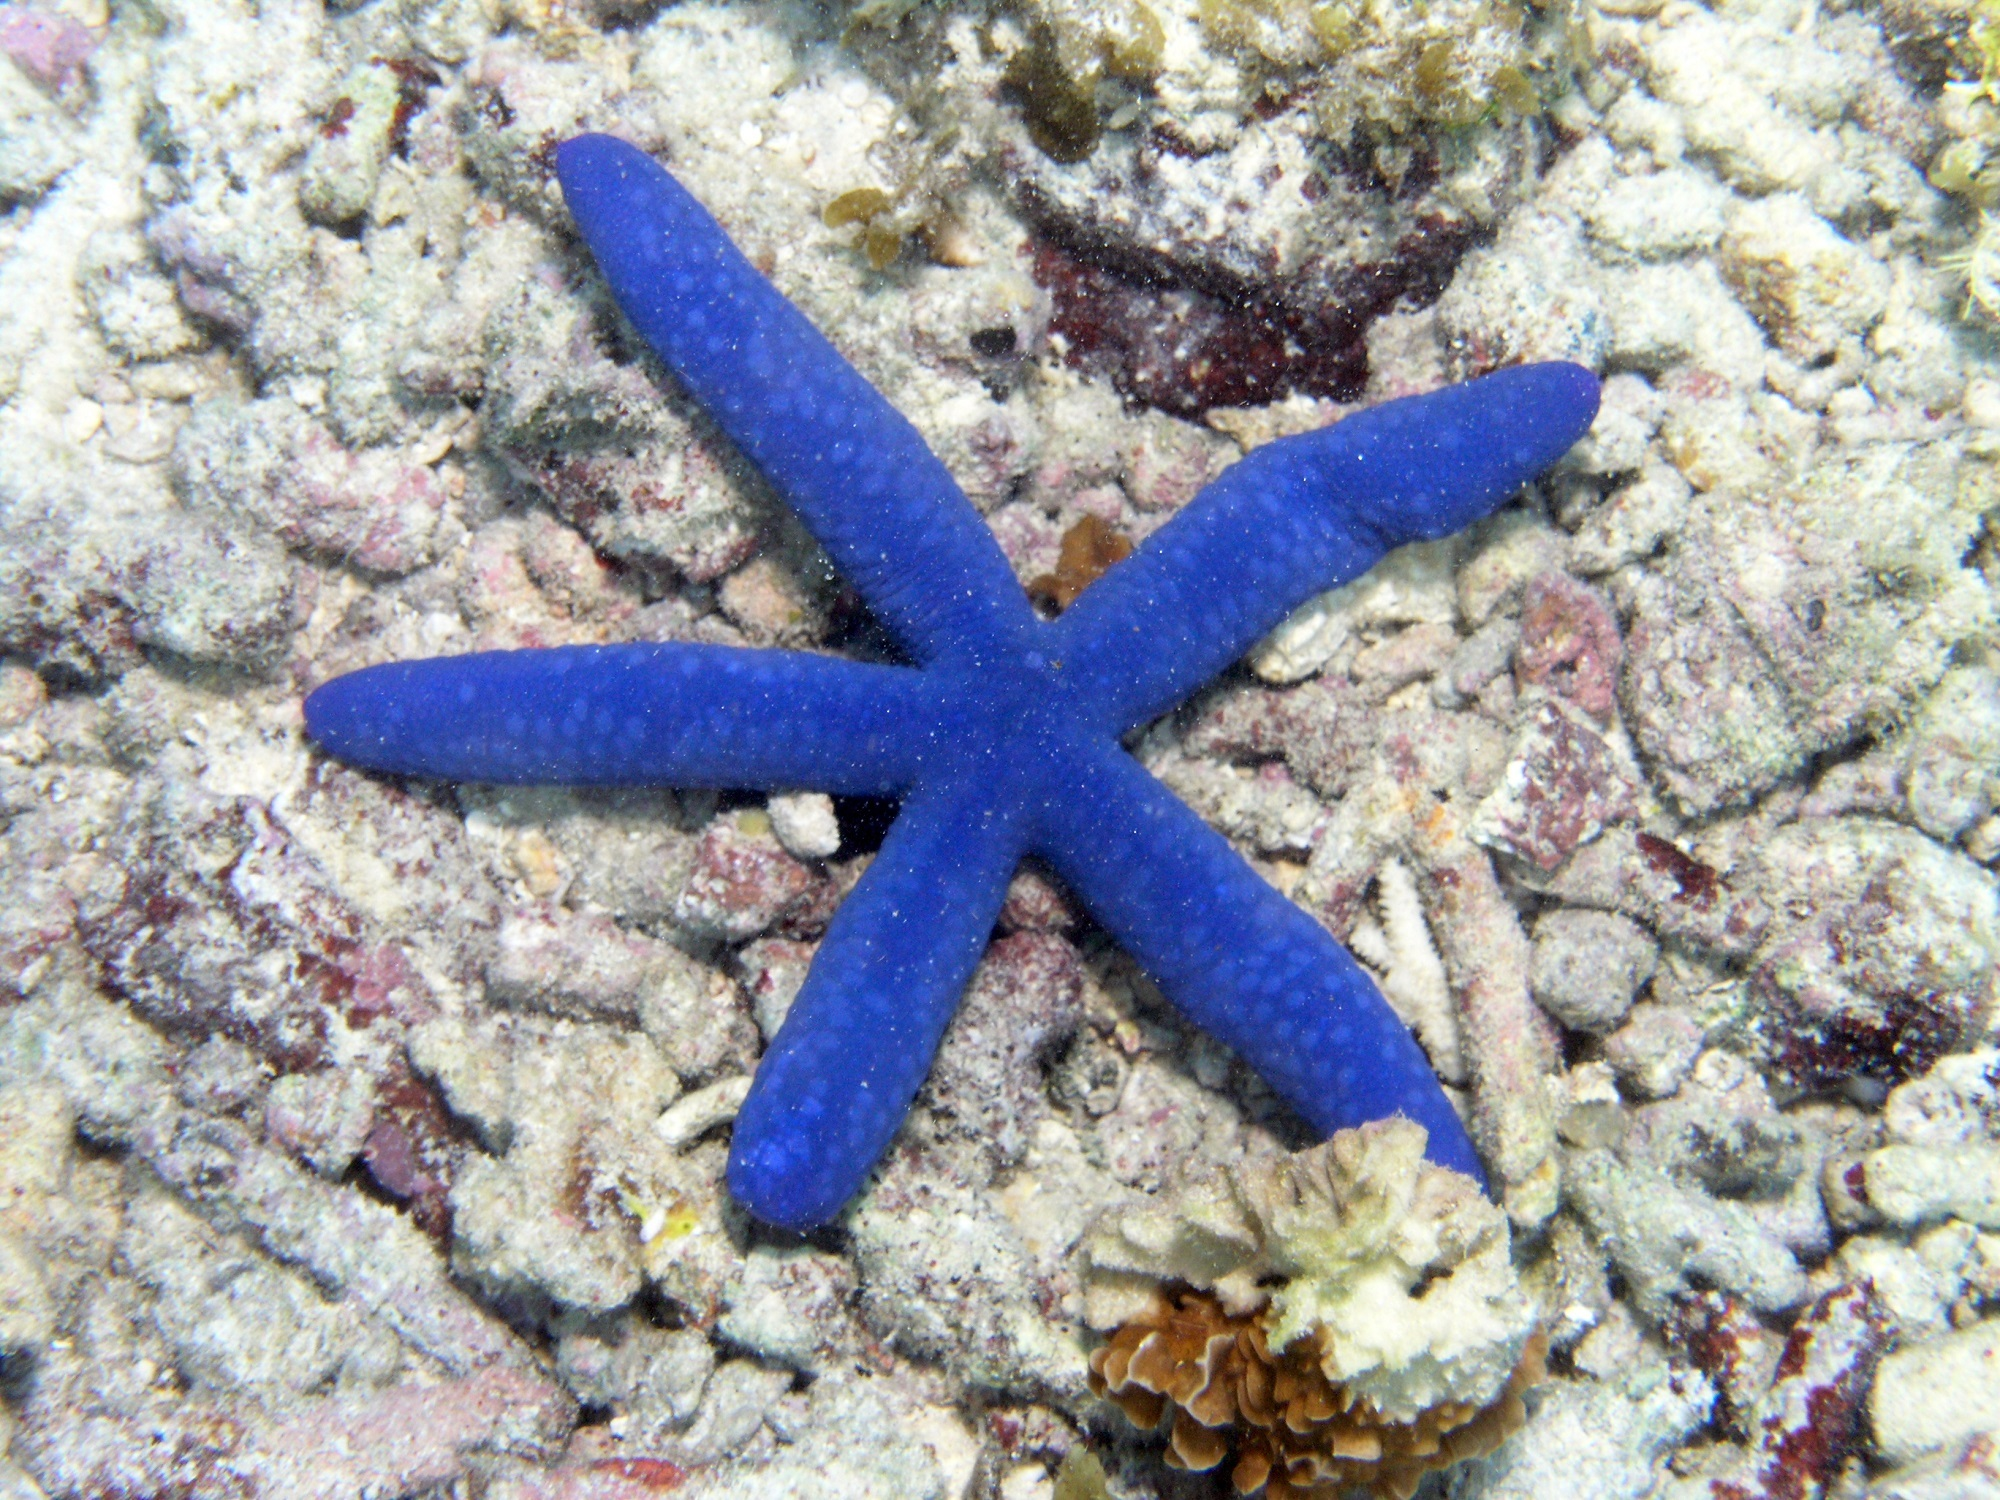 Starfish in the bottom of the ocean photo